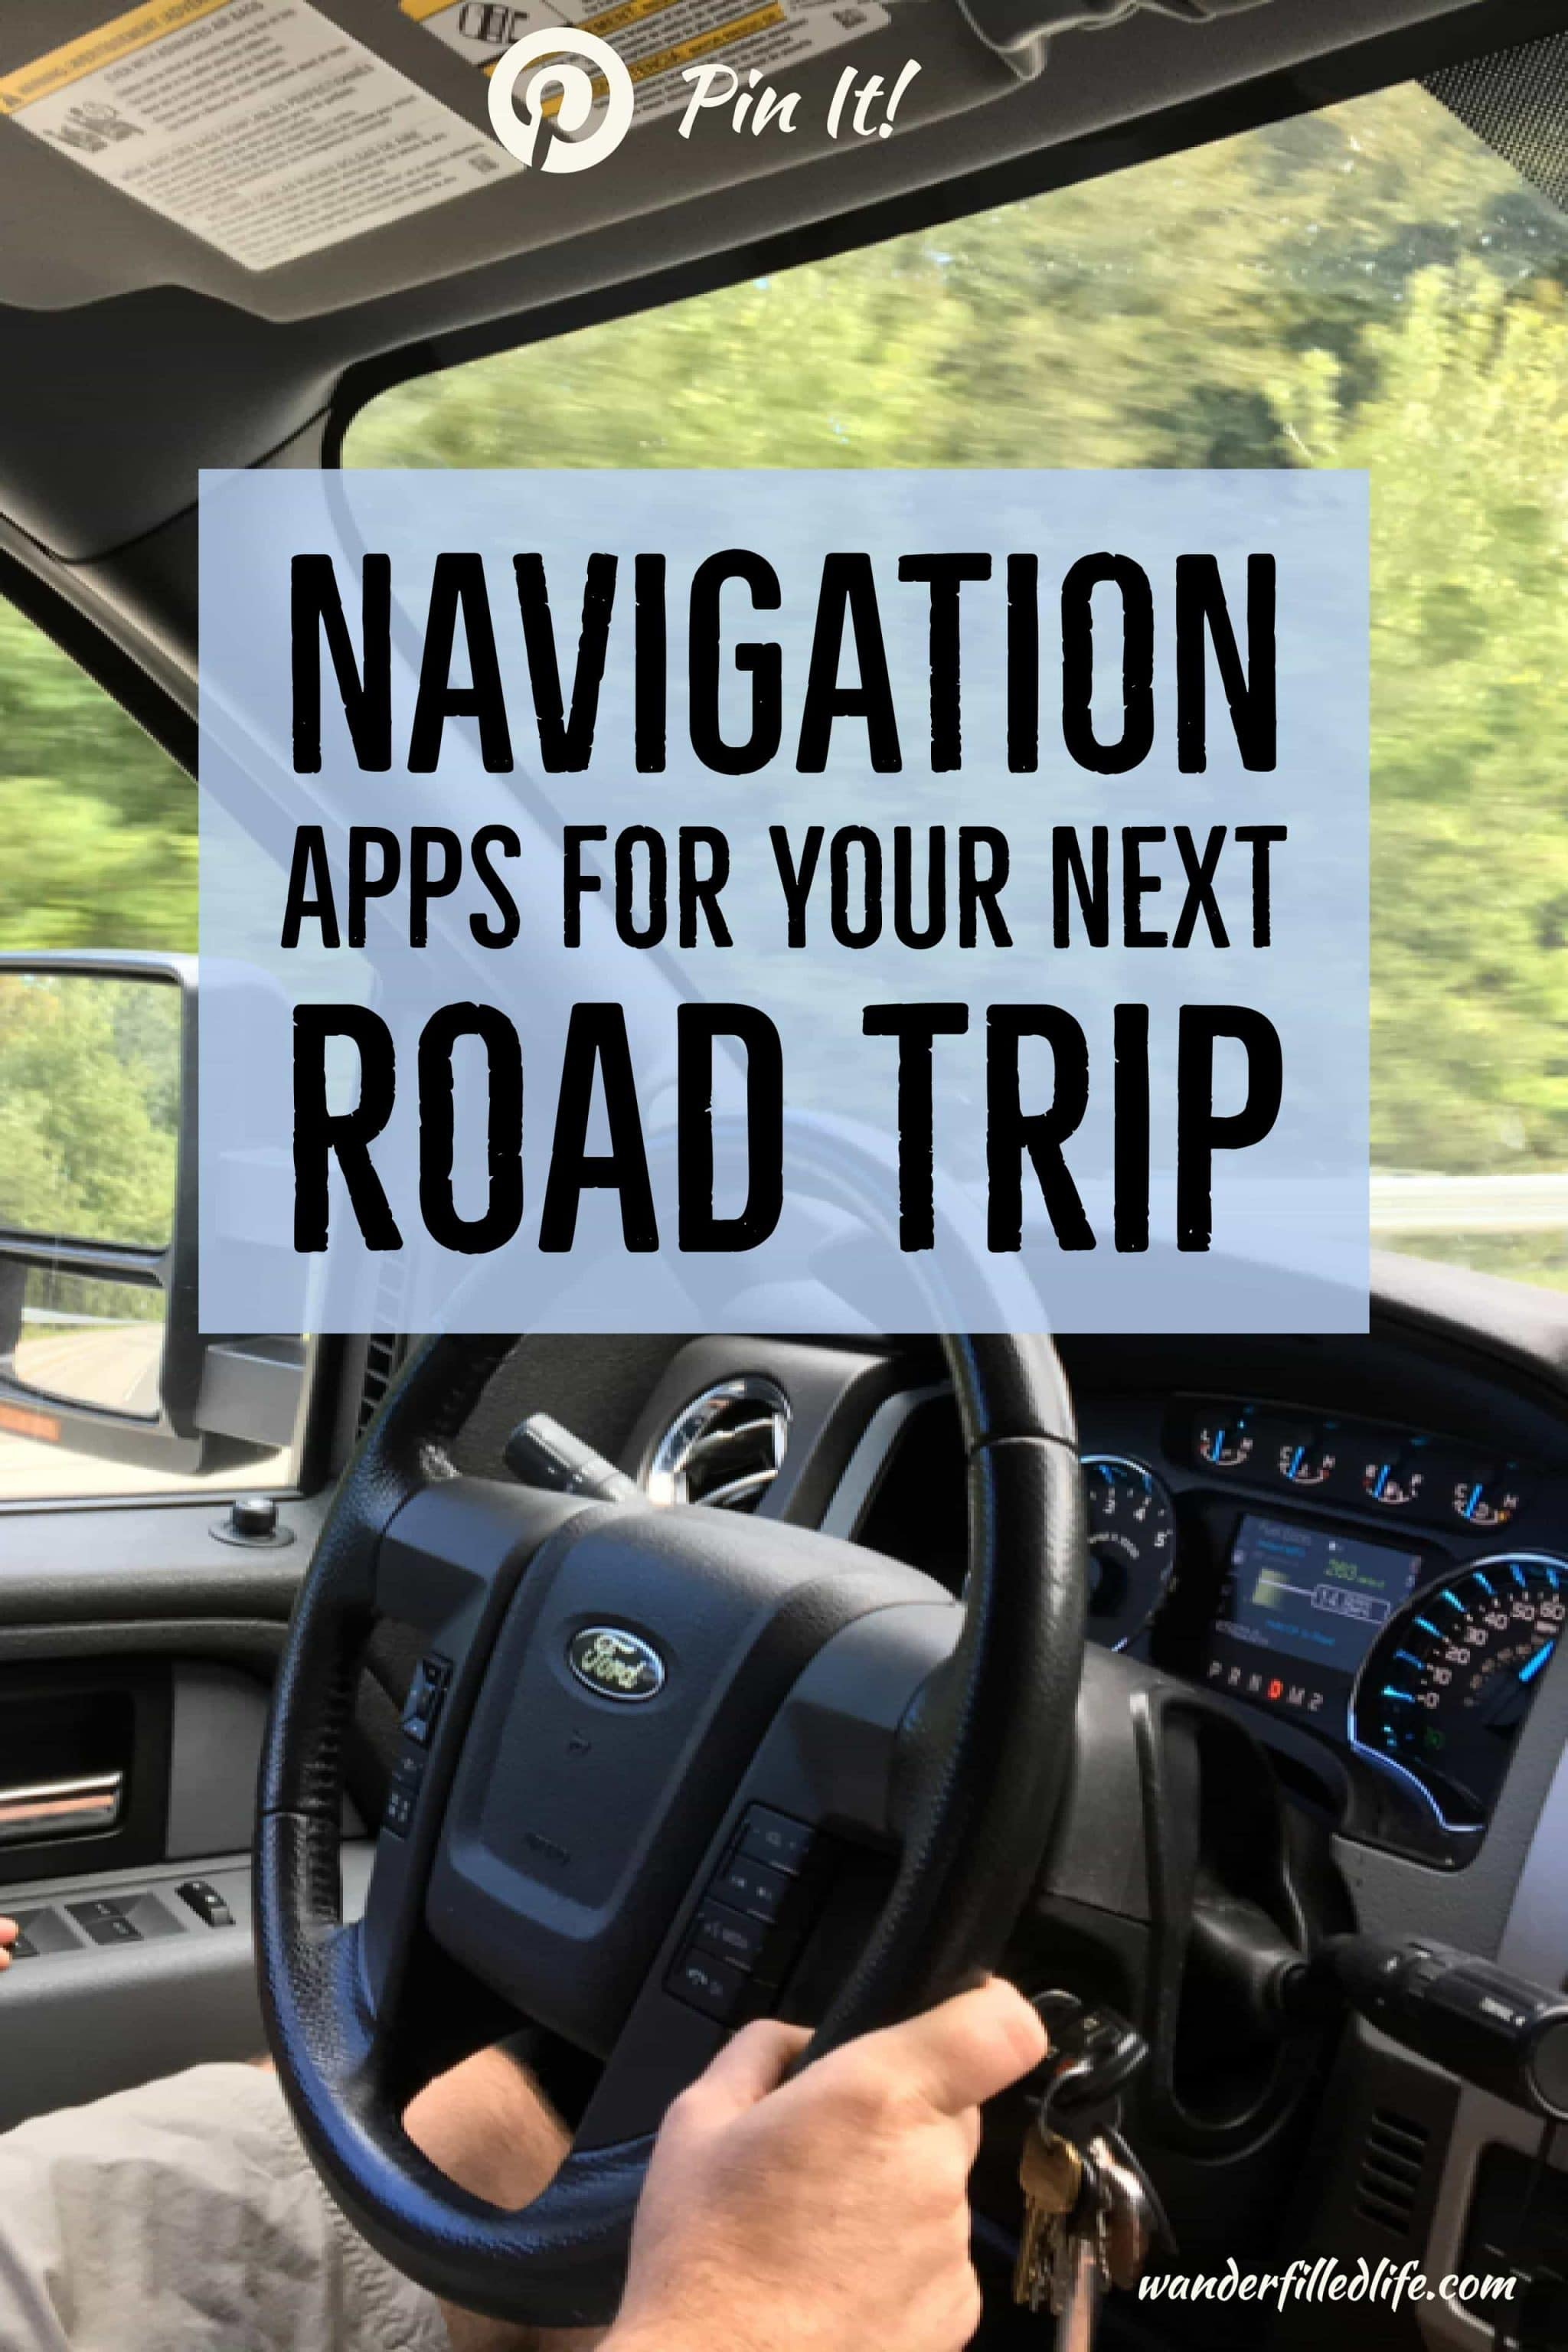 A hands on detailed comparison between the mobile phone navigation apps Apple Maps, Google Maps and Waze on an US road trip.